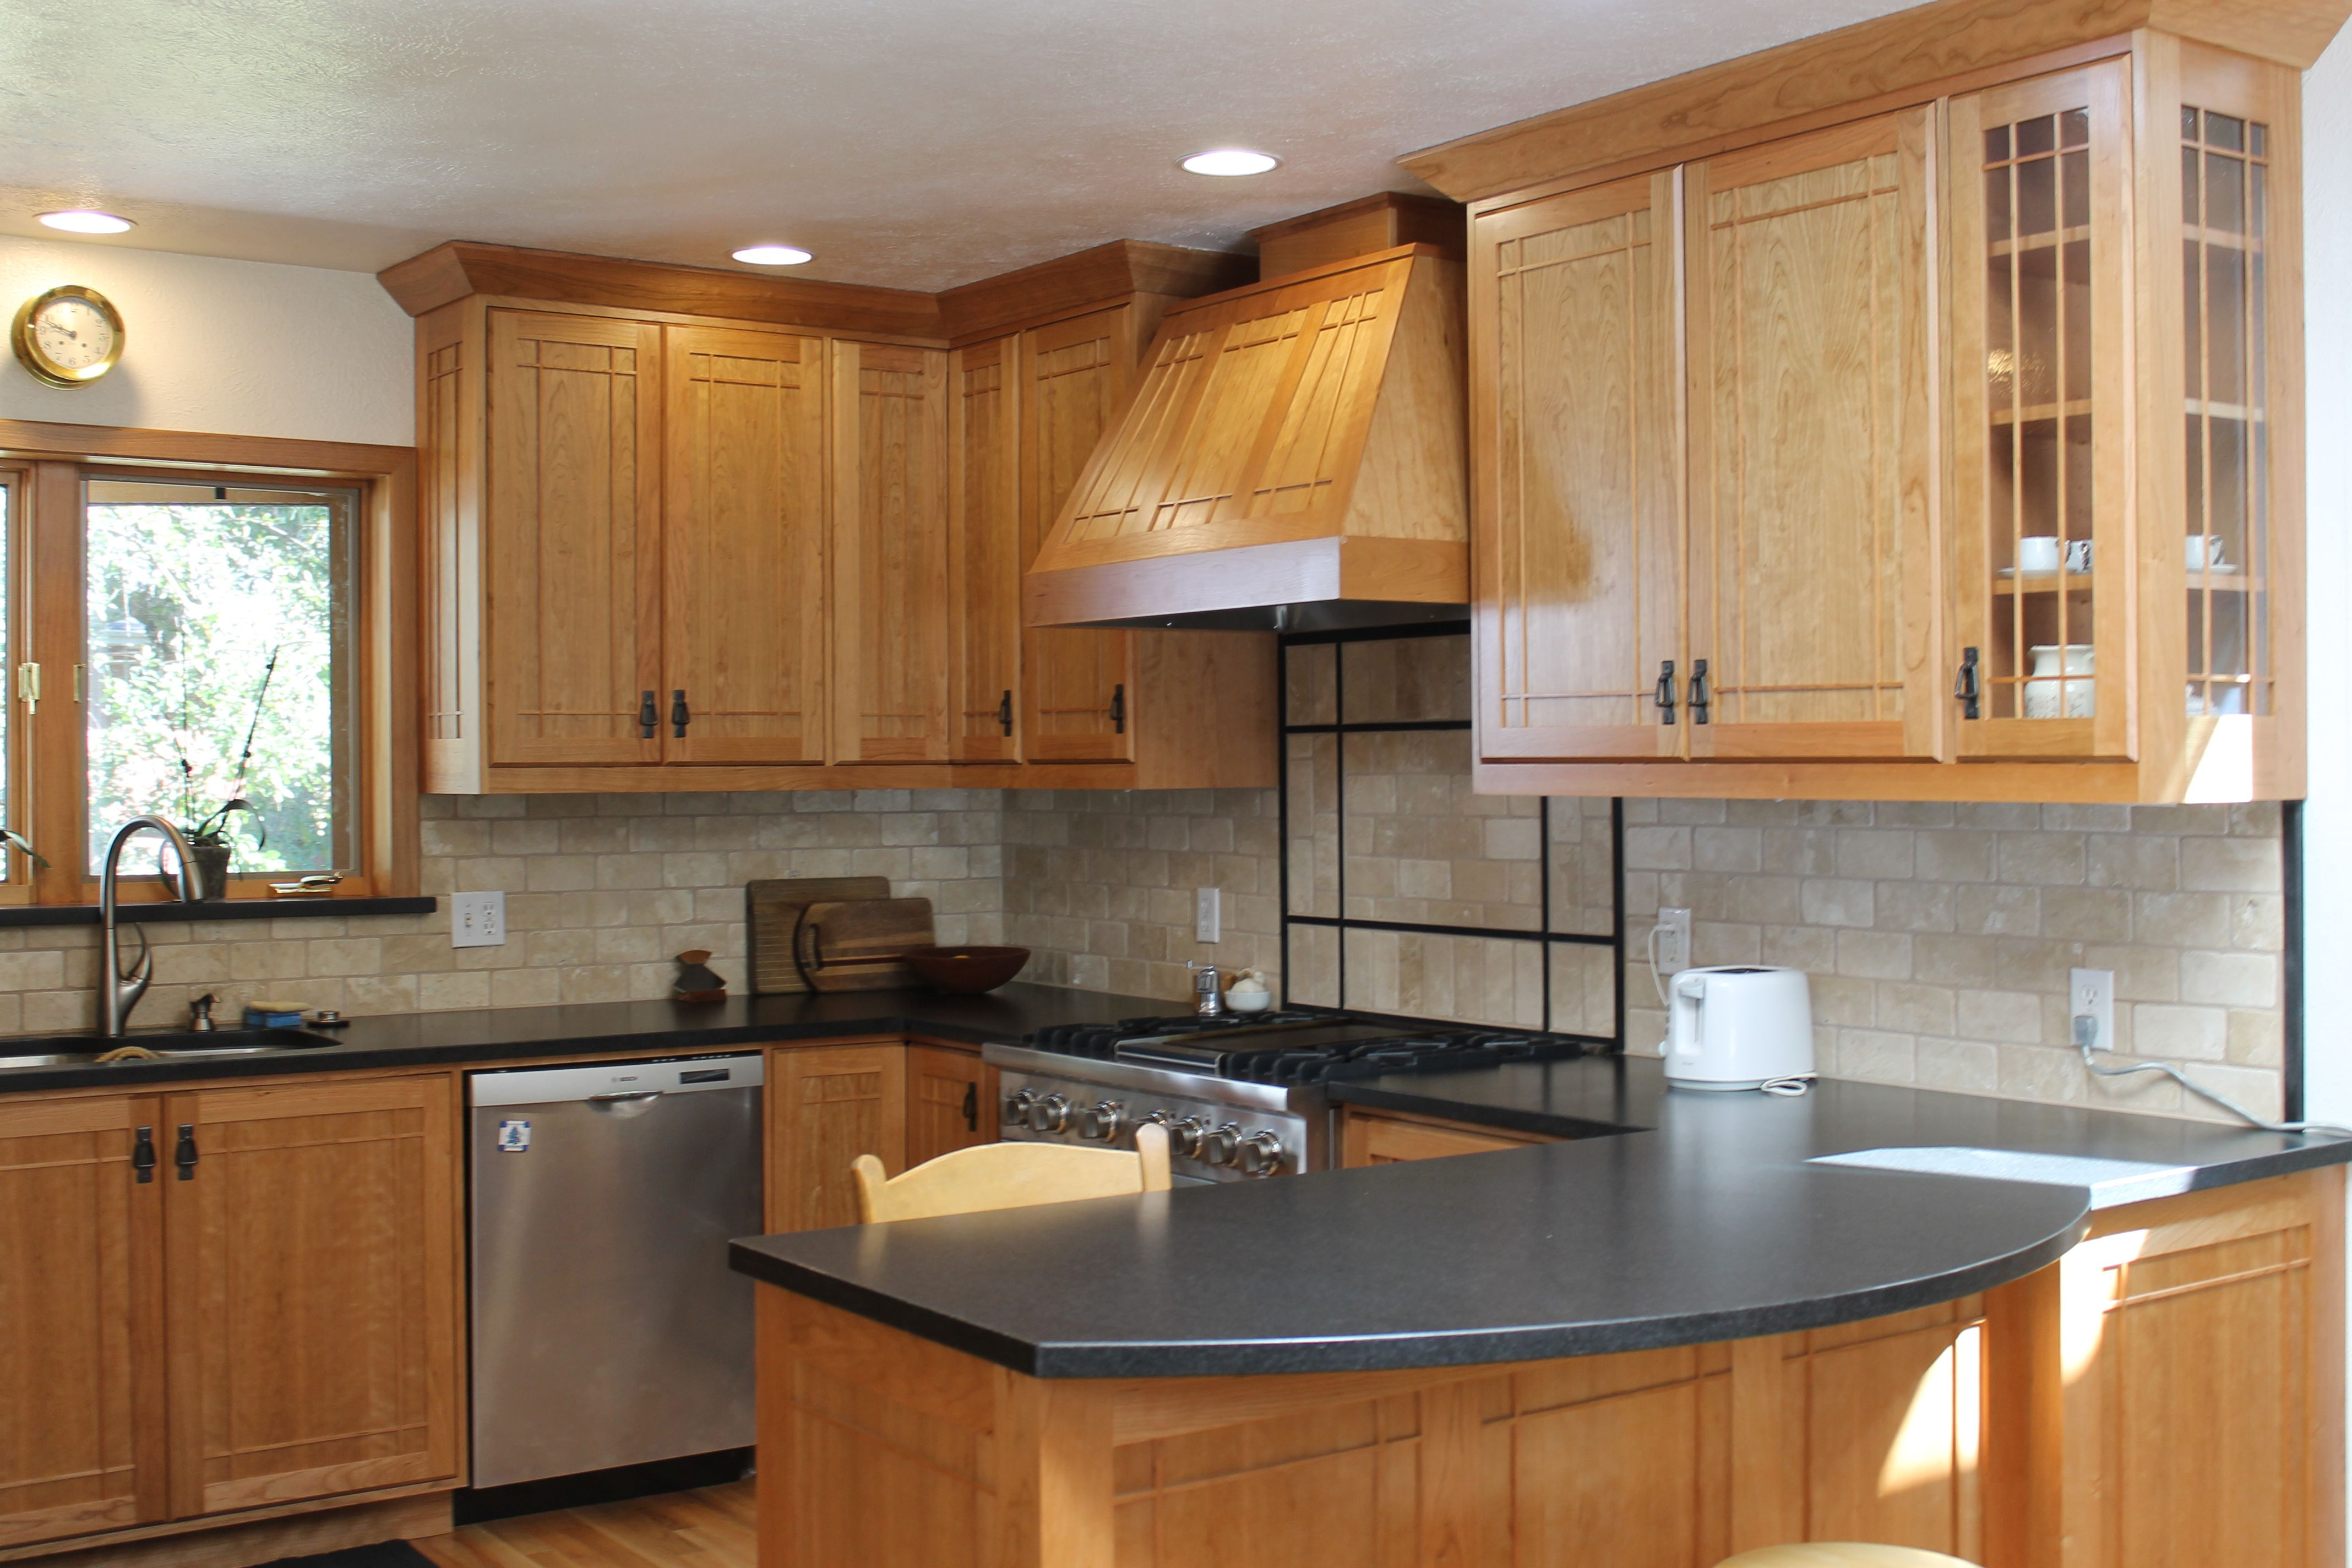 Best Kitchen Contemporary Maple Cabinets In Black With White 400 x 300